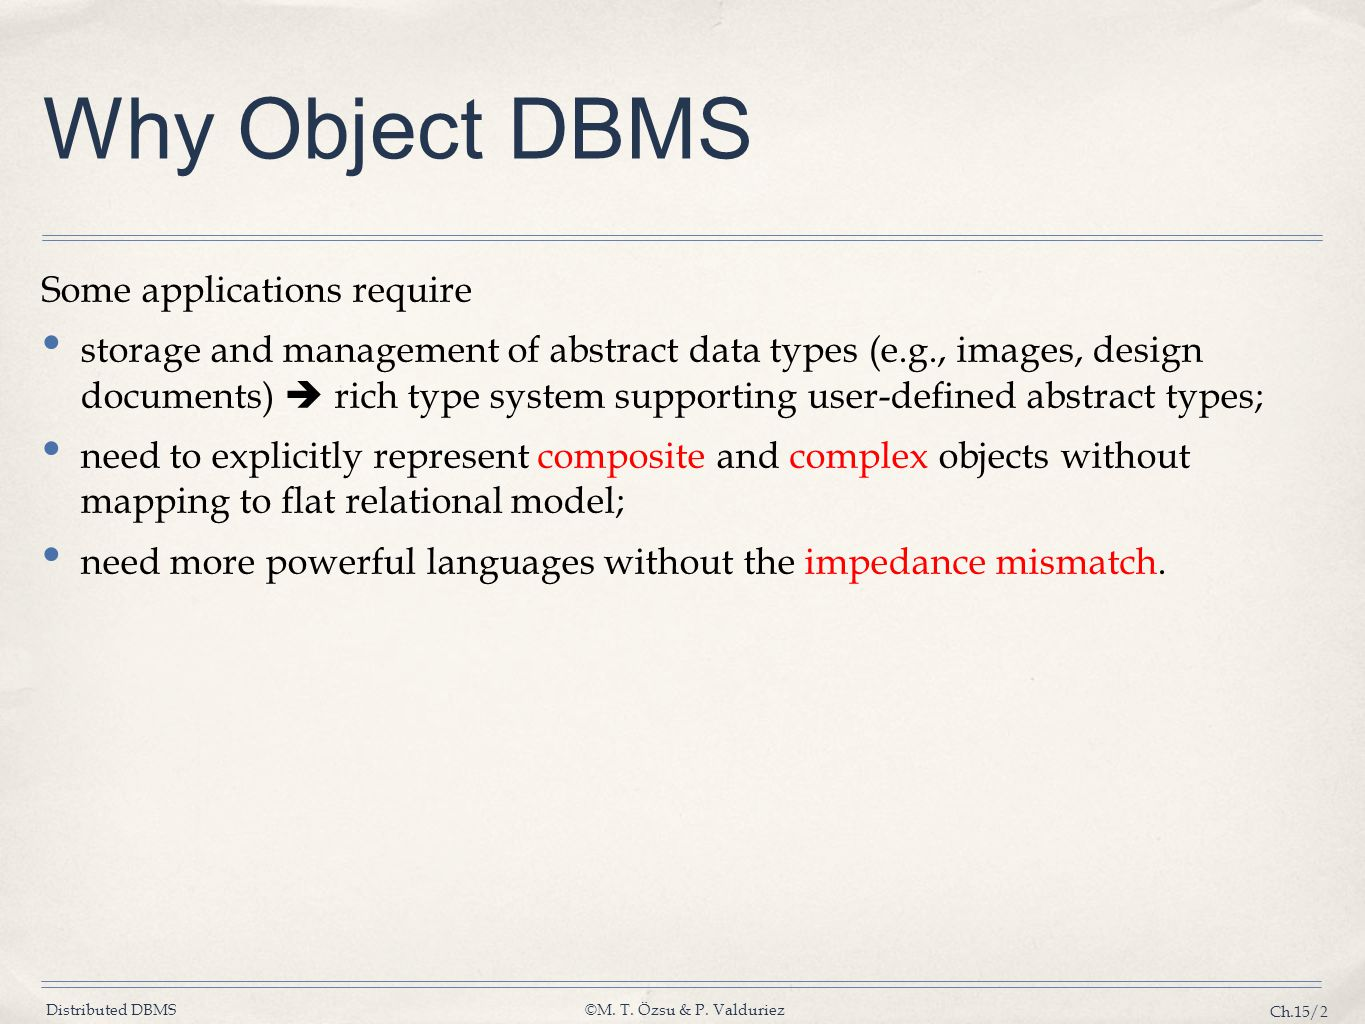 Distributed DBMS©M. T. Özsu & P. Valduriez Ch.15/2 Why Object DBMS Some applications require storage and management of abstract data types (e.g., imag